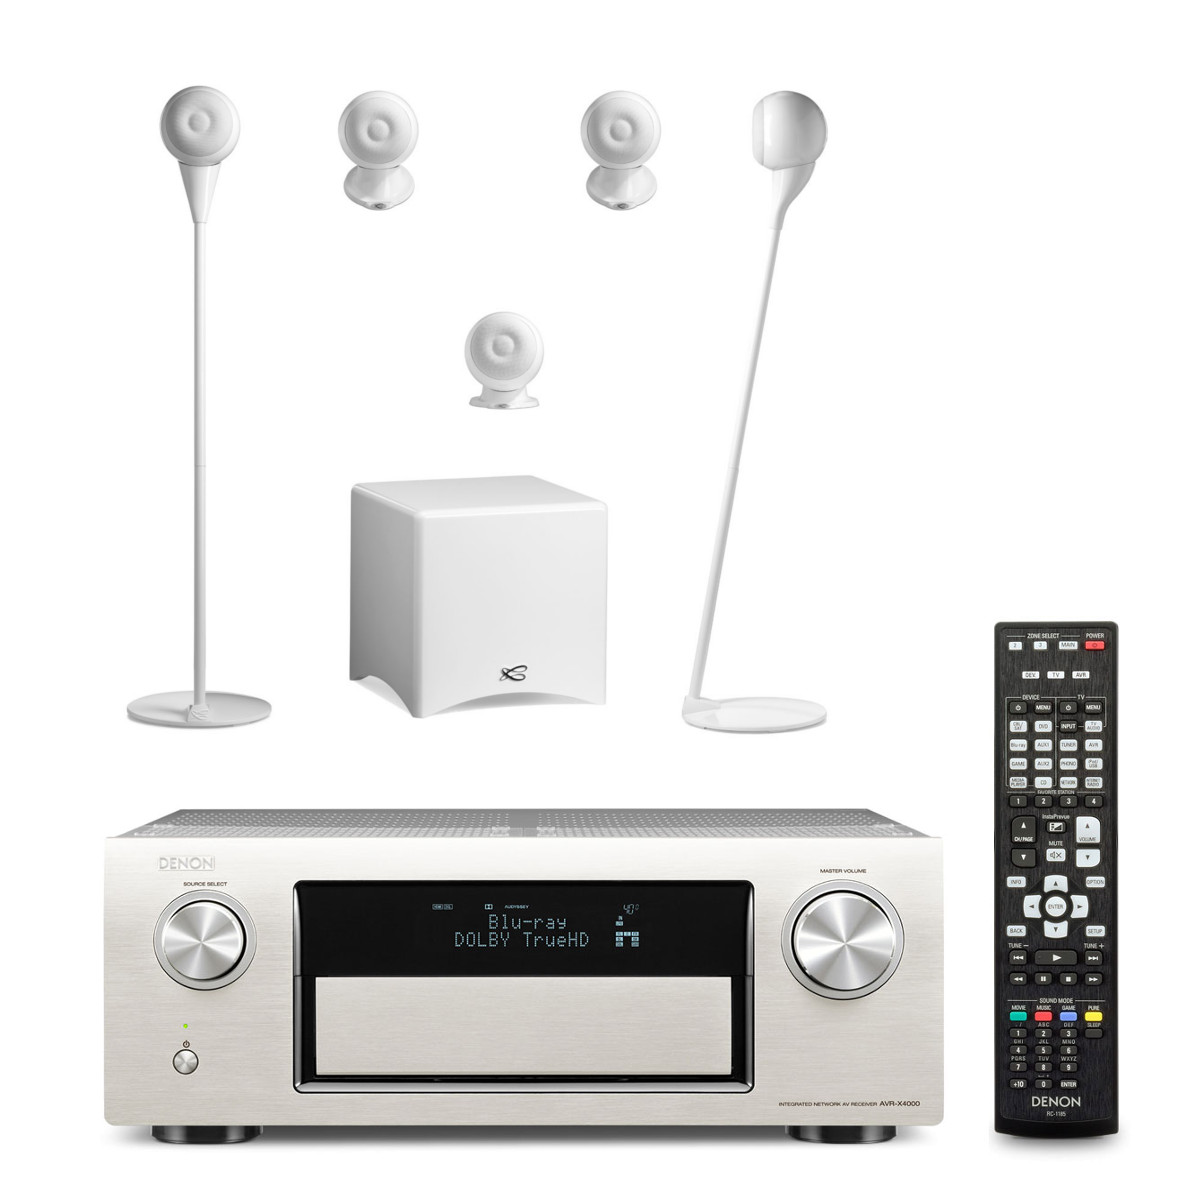 denon avr x4000 silver cabasse pack eole 3 5 1 blanc. Black Bedroom Furniture Sets. Home Design Ideas